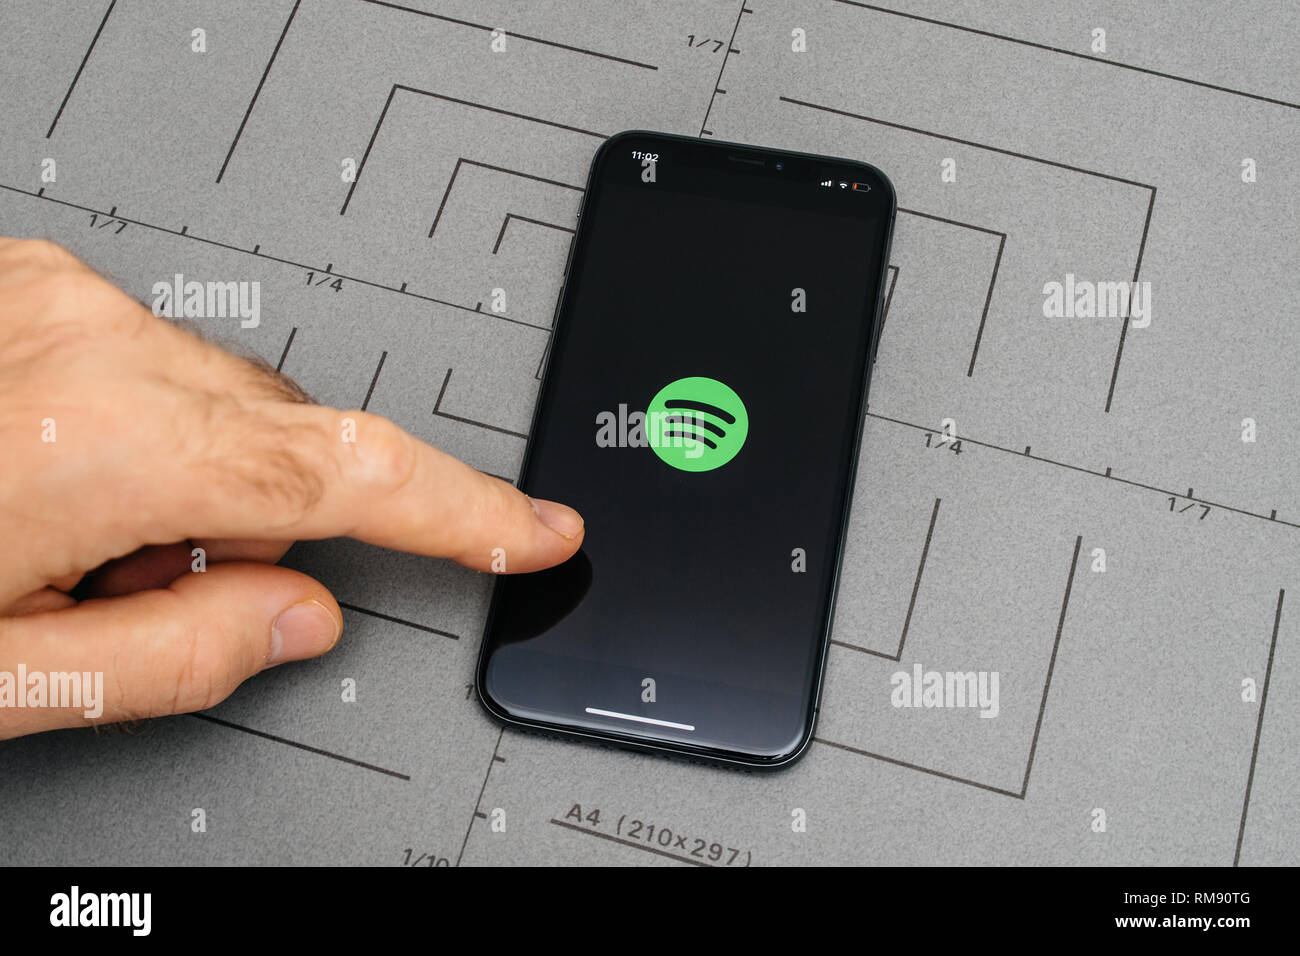 PARIS, FRANCE - NOV 9, 2017: Man POV personal perspective on the latest iPhone X XS with hand pressing the Spotify button - Stock Image